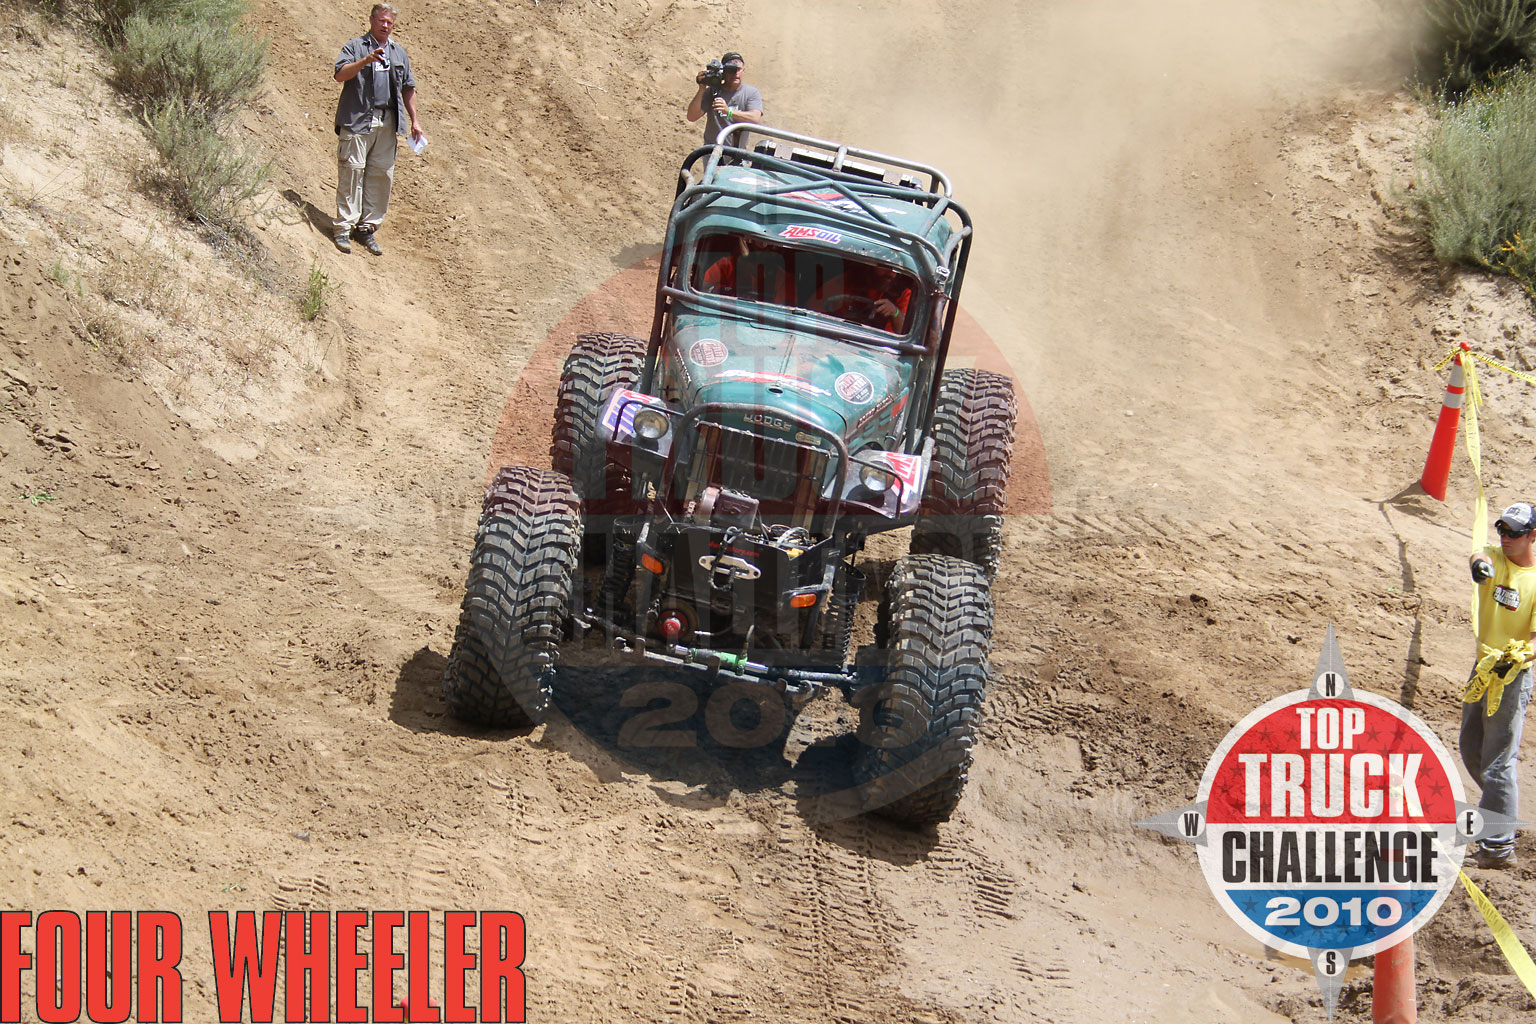 2010 Top Truck Challenge Obstacle Course Roger King 1964 Dodge Wm300 Power Wagon